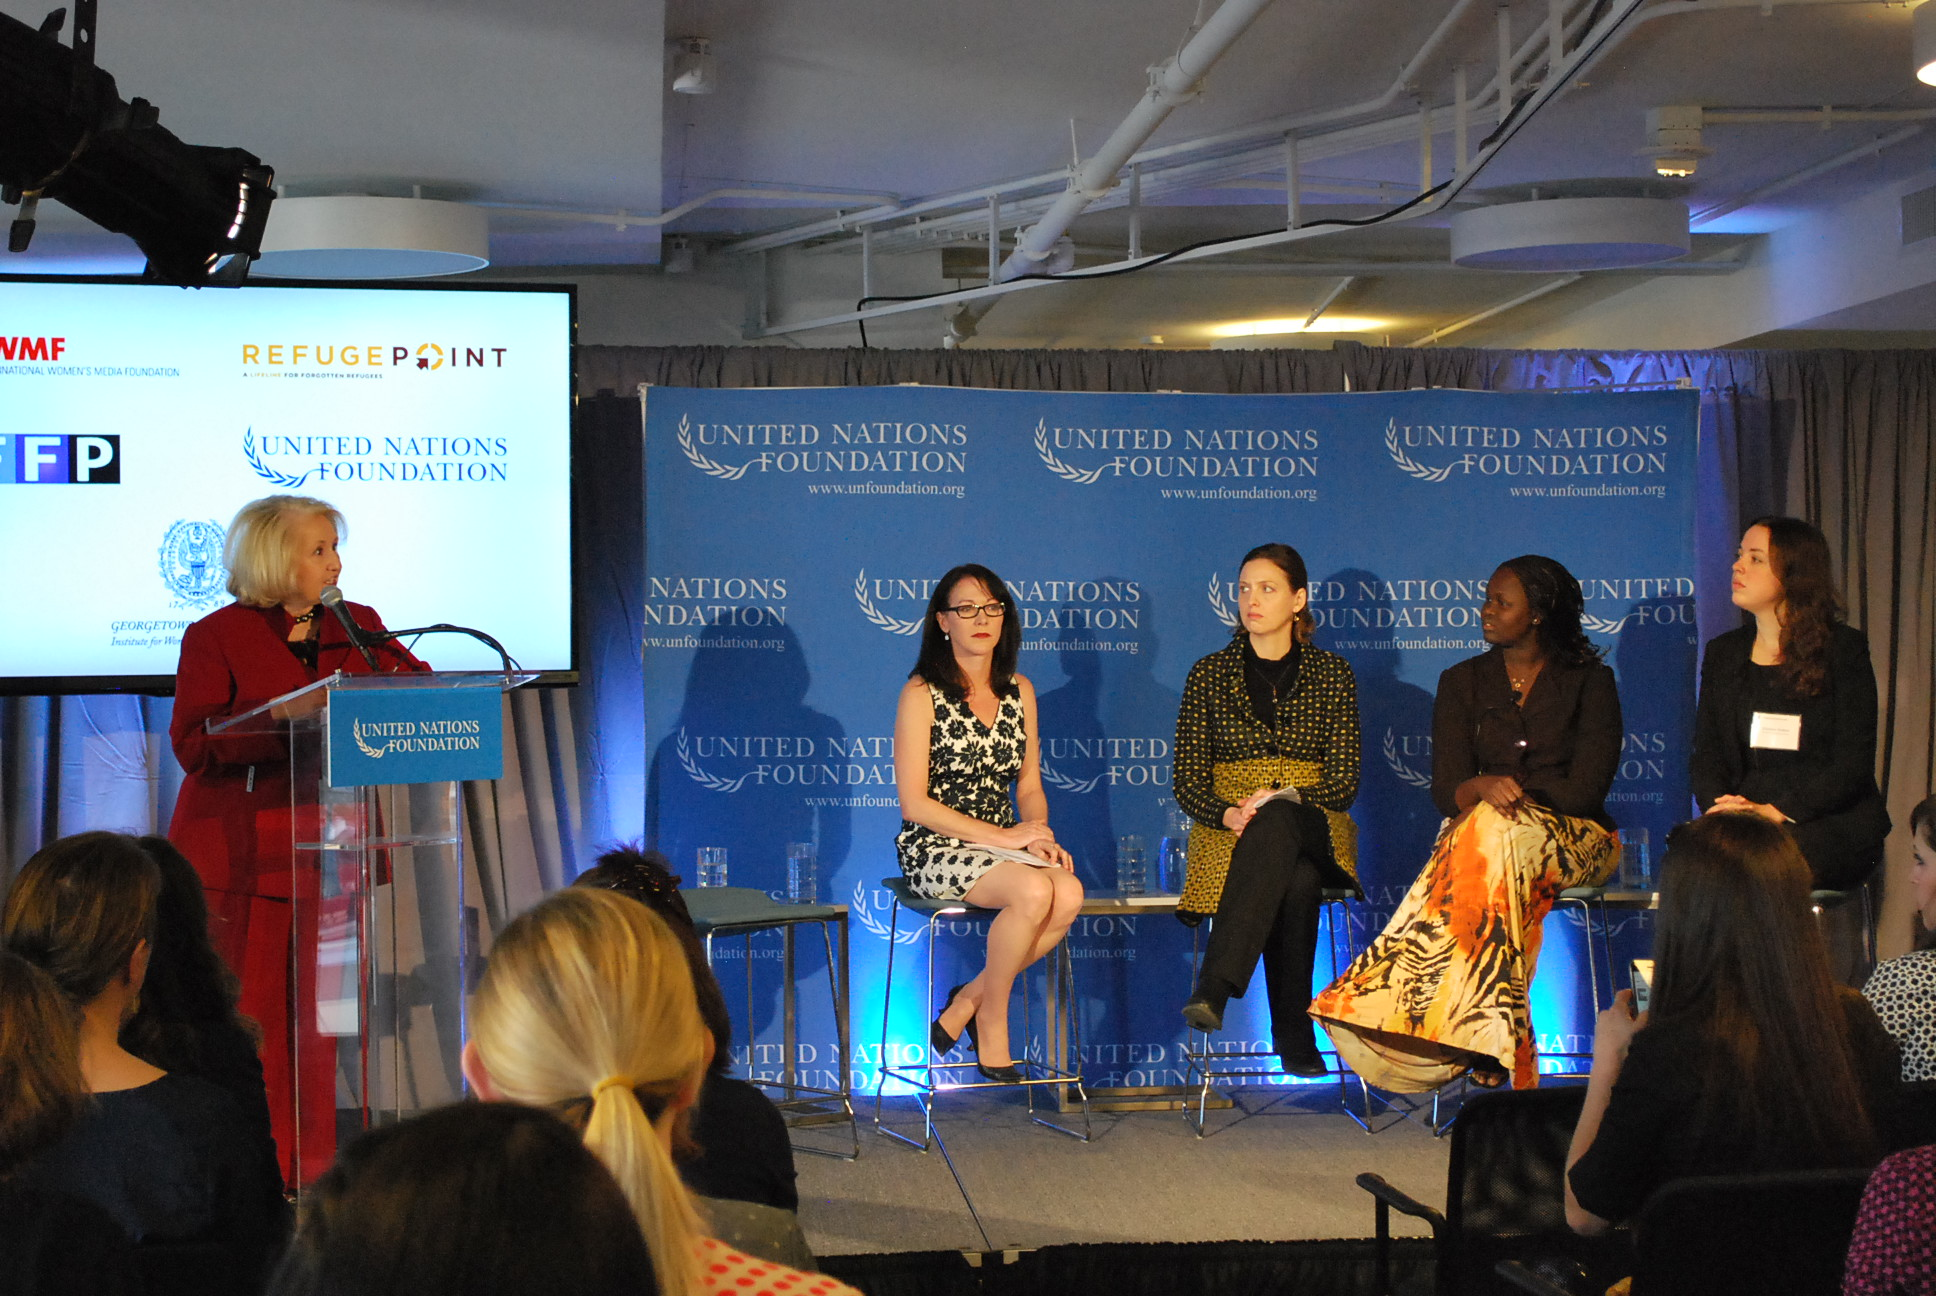 Panel sitting on the UN Foundation's Women in Fragile States event.